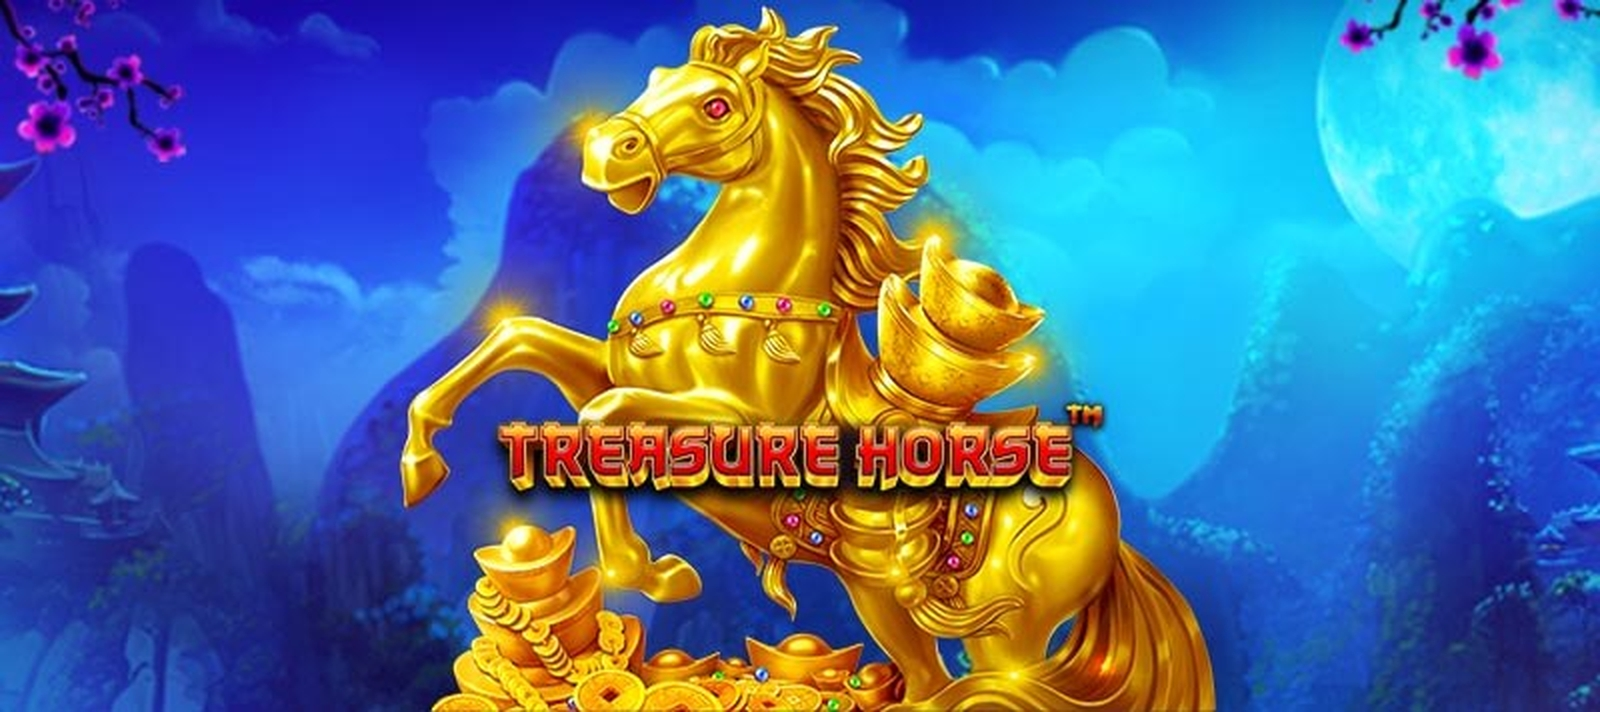 The Treasure Horse Online Slot Demo Game by Pragmatic Play